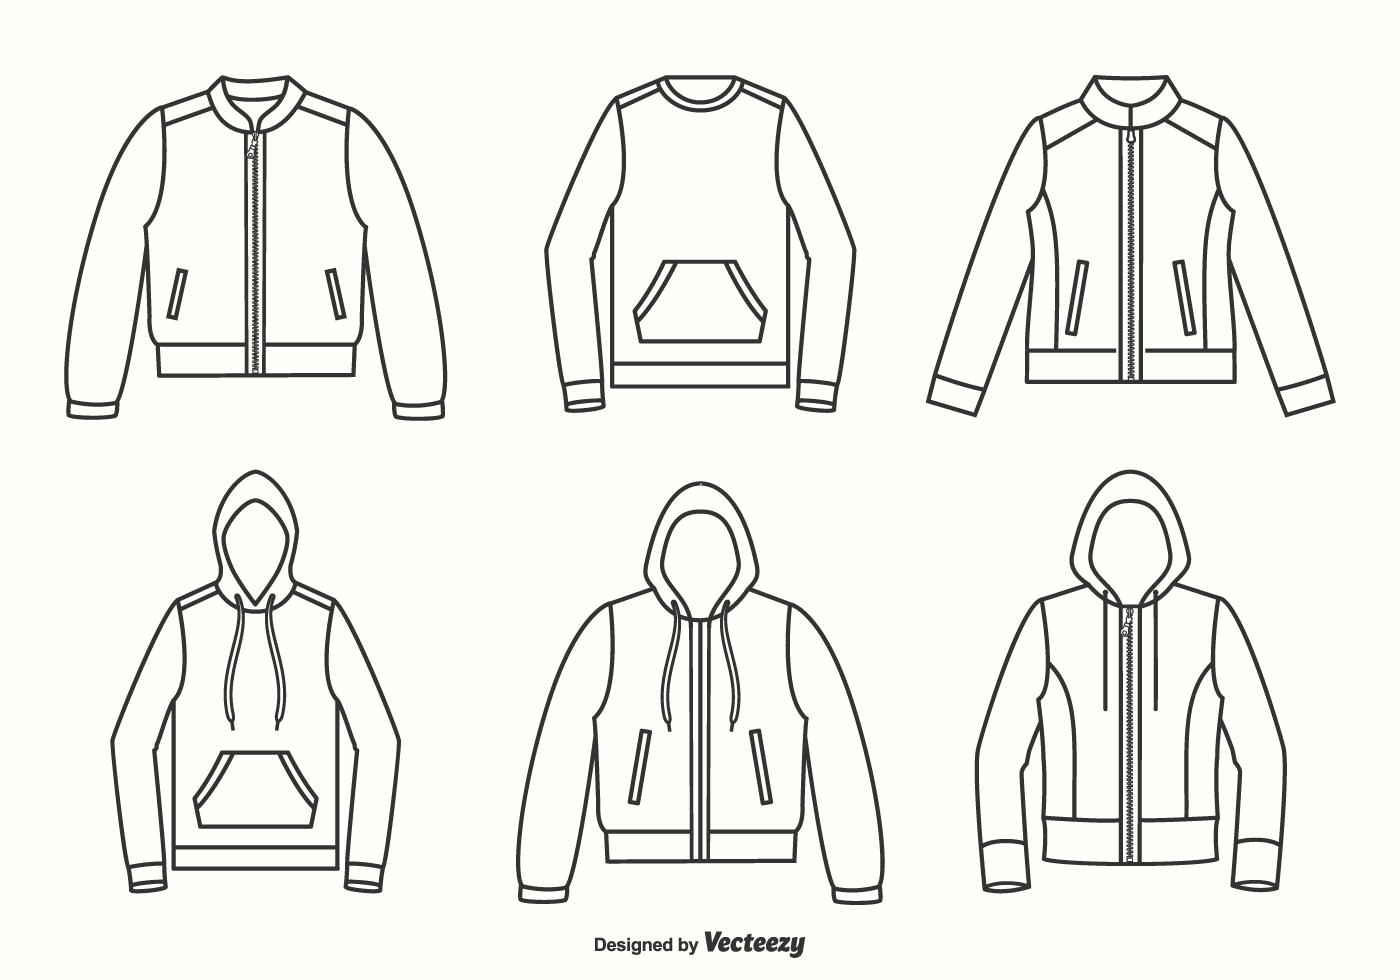 Jackets, Hoodies And Sweater Outline Vector Design